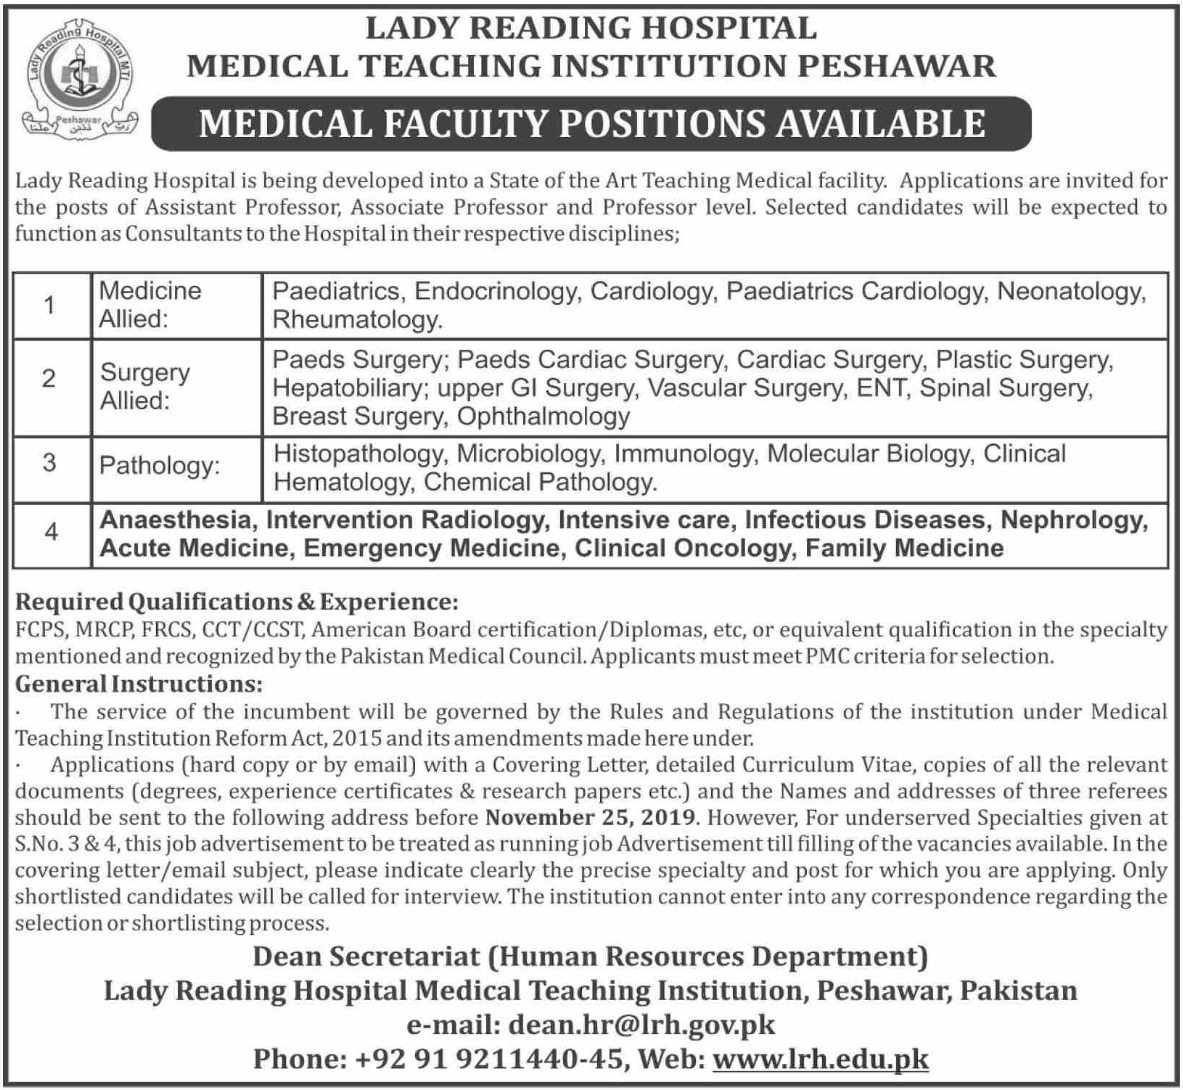 Lady Reading Hospital MTI Peshawar Jobs 2019